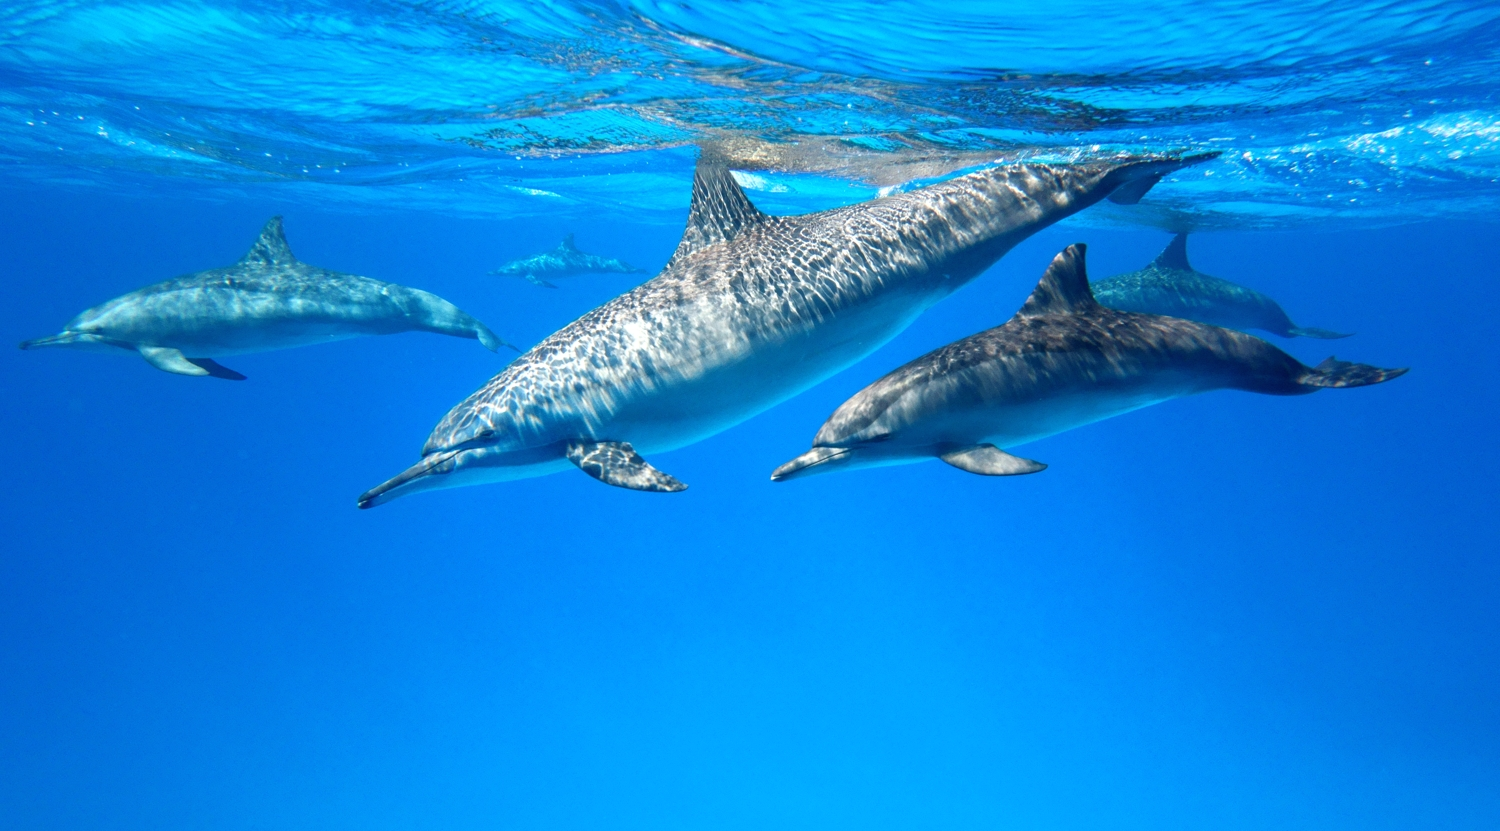 Spinner dolphins by Dave Currey